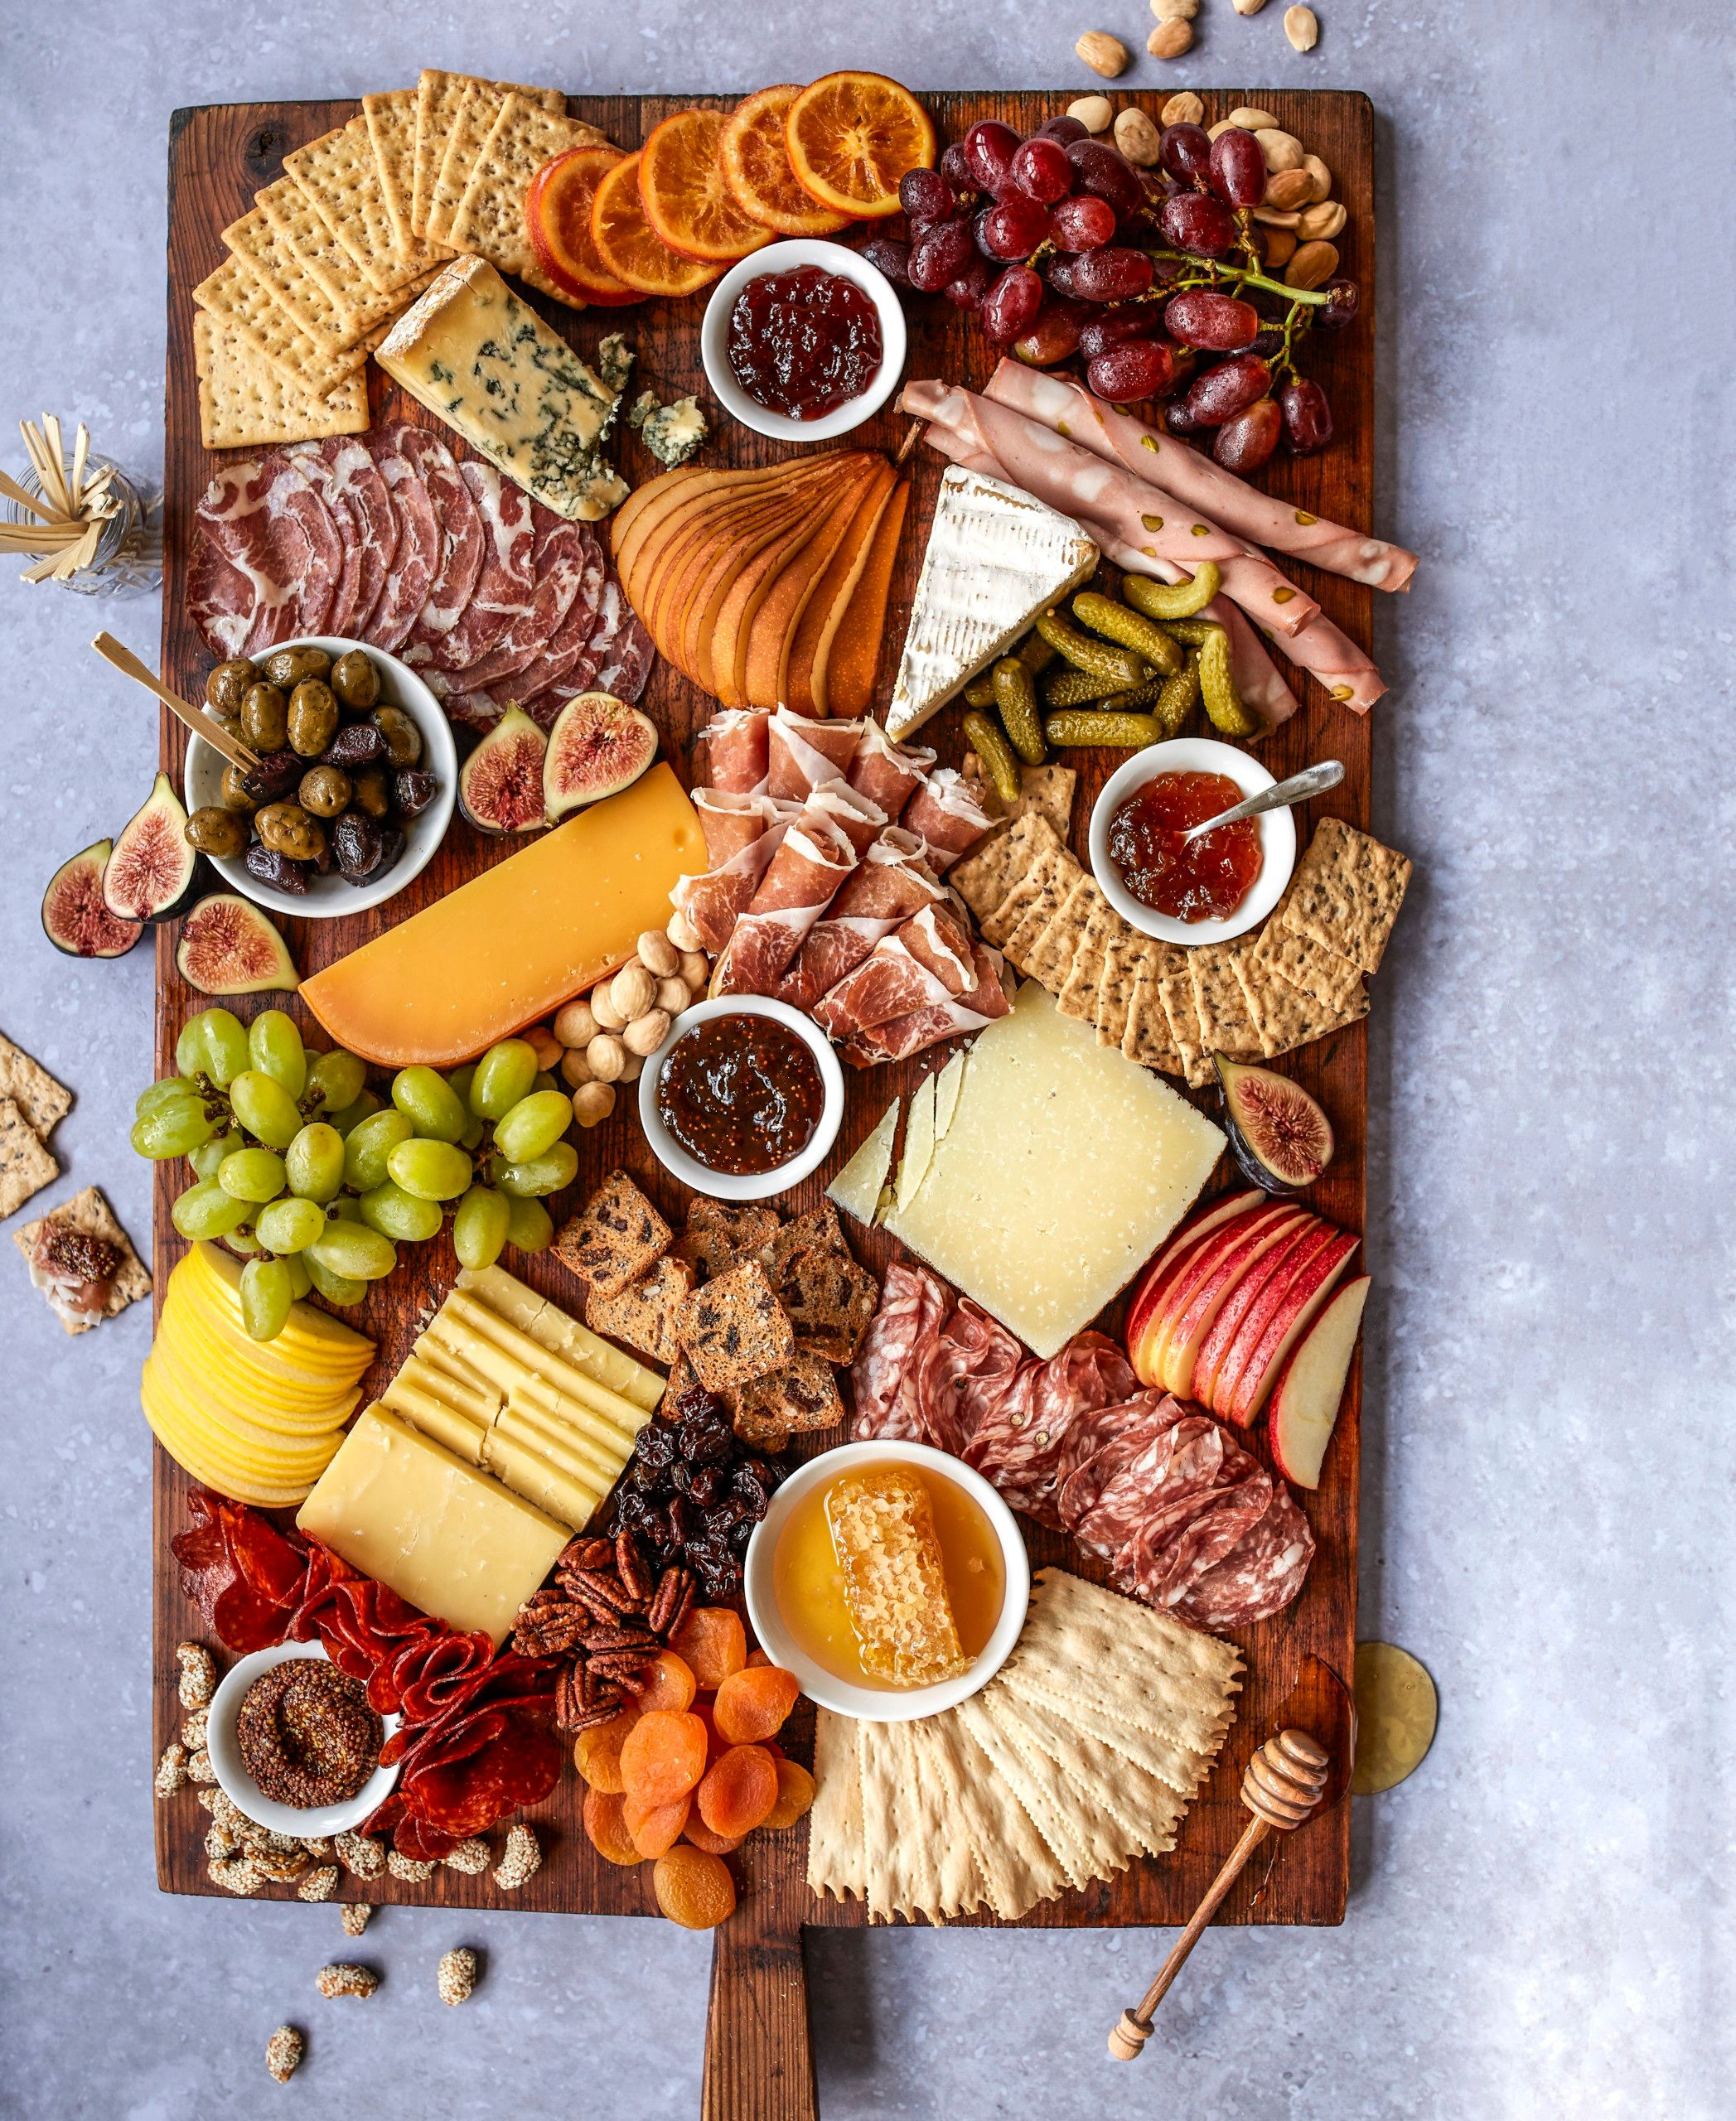 You Too Can Board The Charcuterie Train